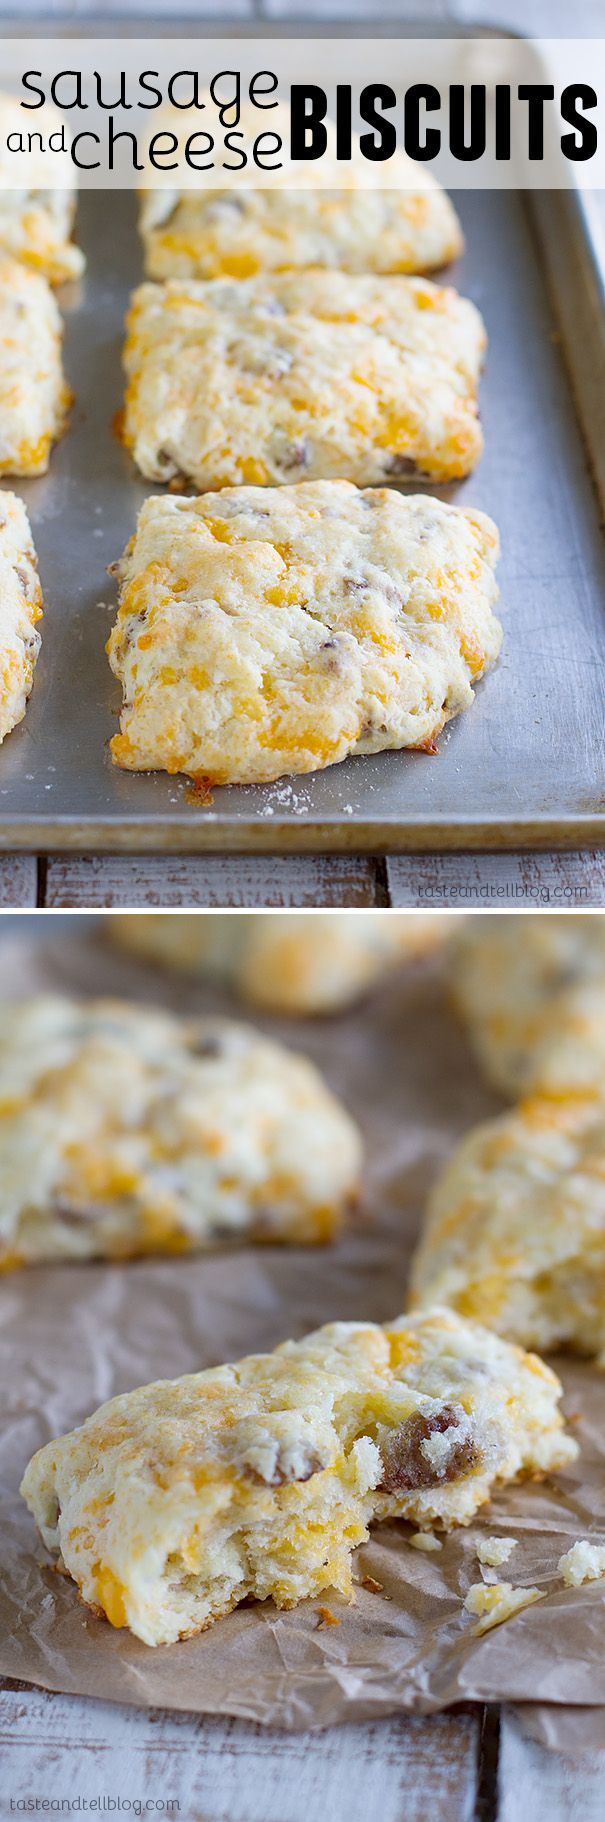 how to make biscuits with flour eggs and milk